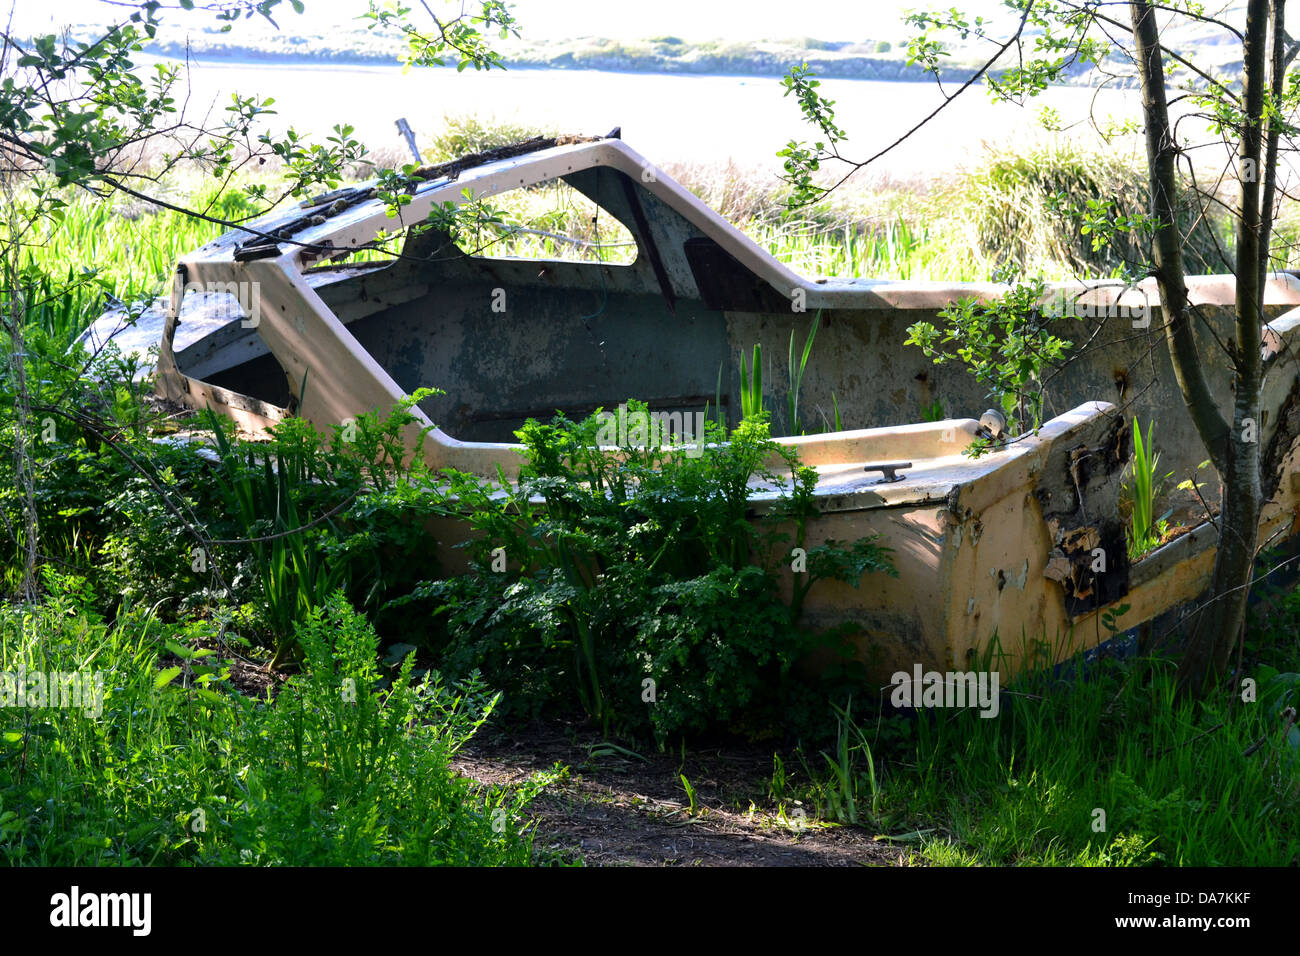 Abandoned and weathered boat, overgrown with weeds and wildflowers on the bank of an Estuary - Stock Image